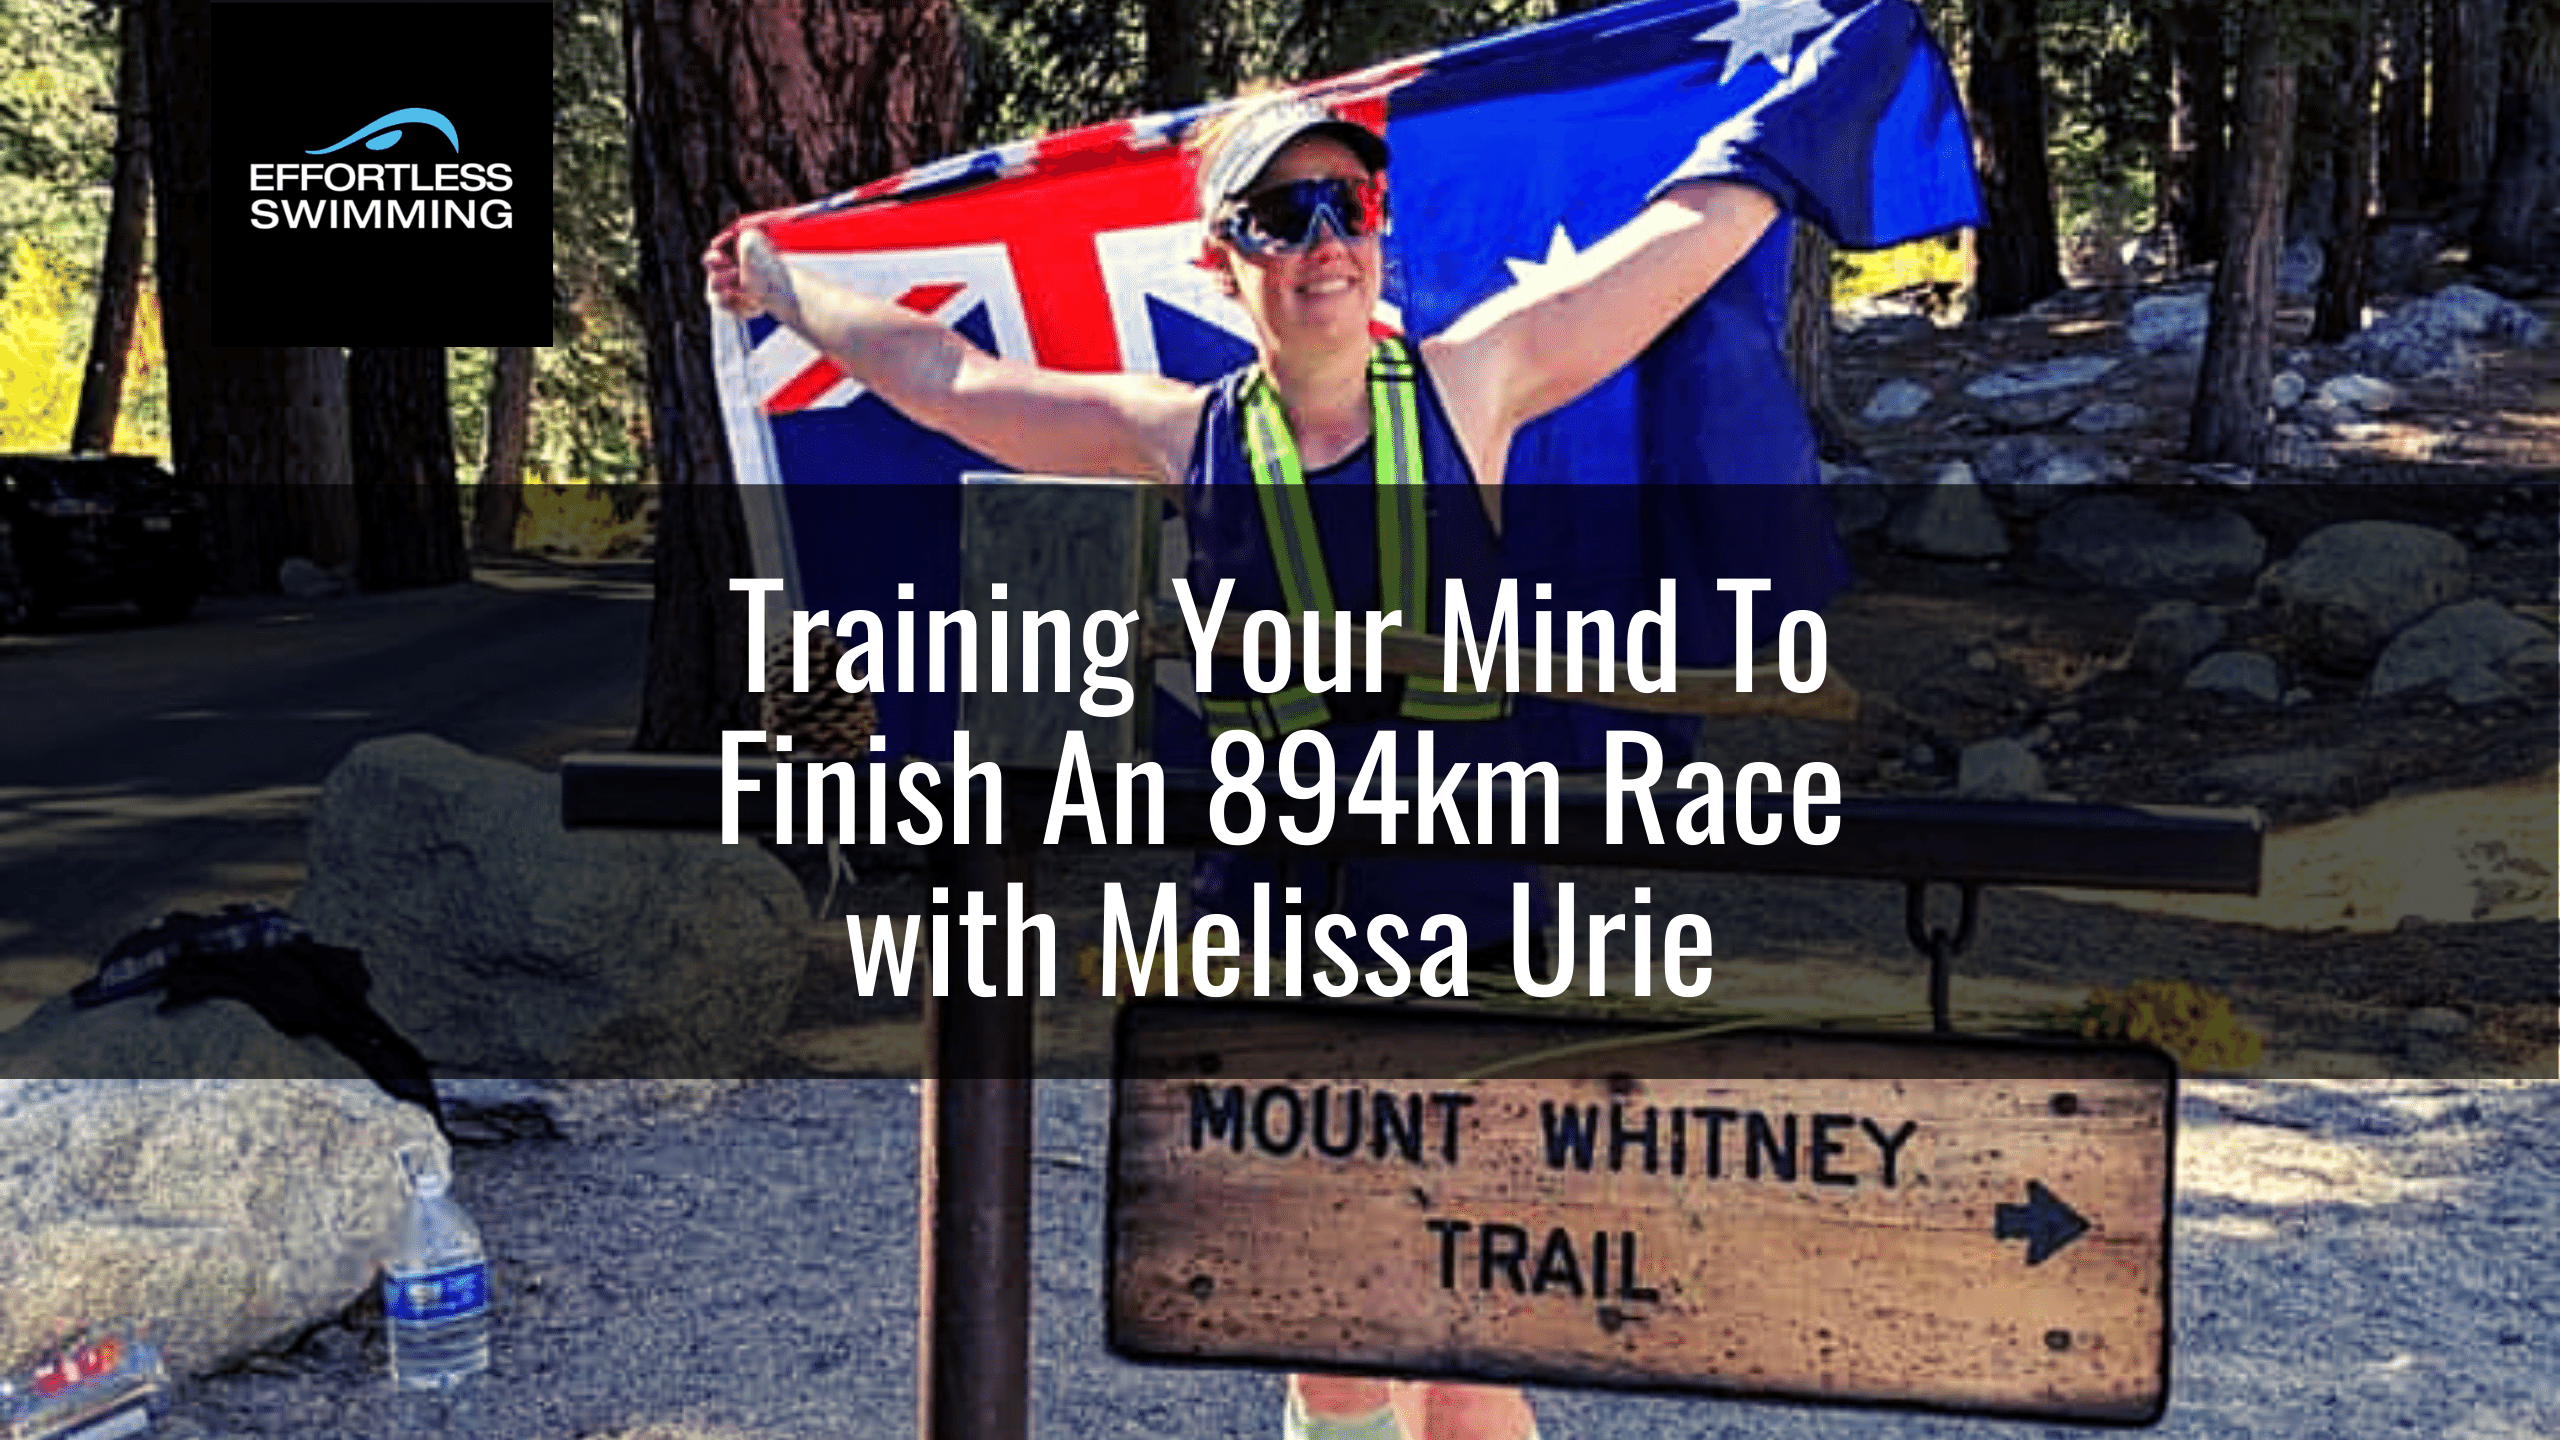 Training Your Mind To Finish An 894km Race with Melissa Urie